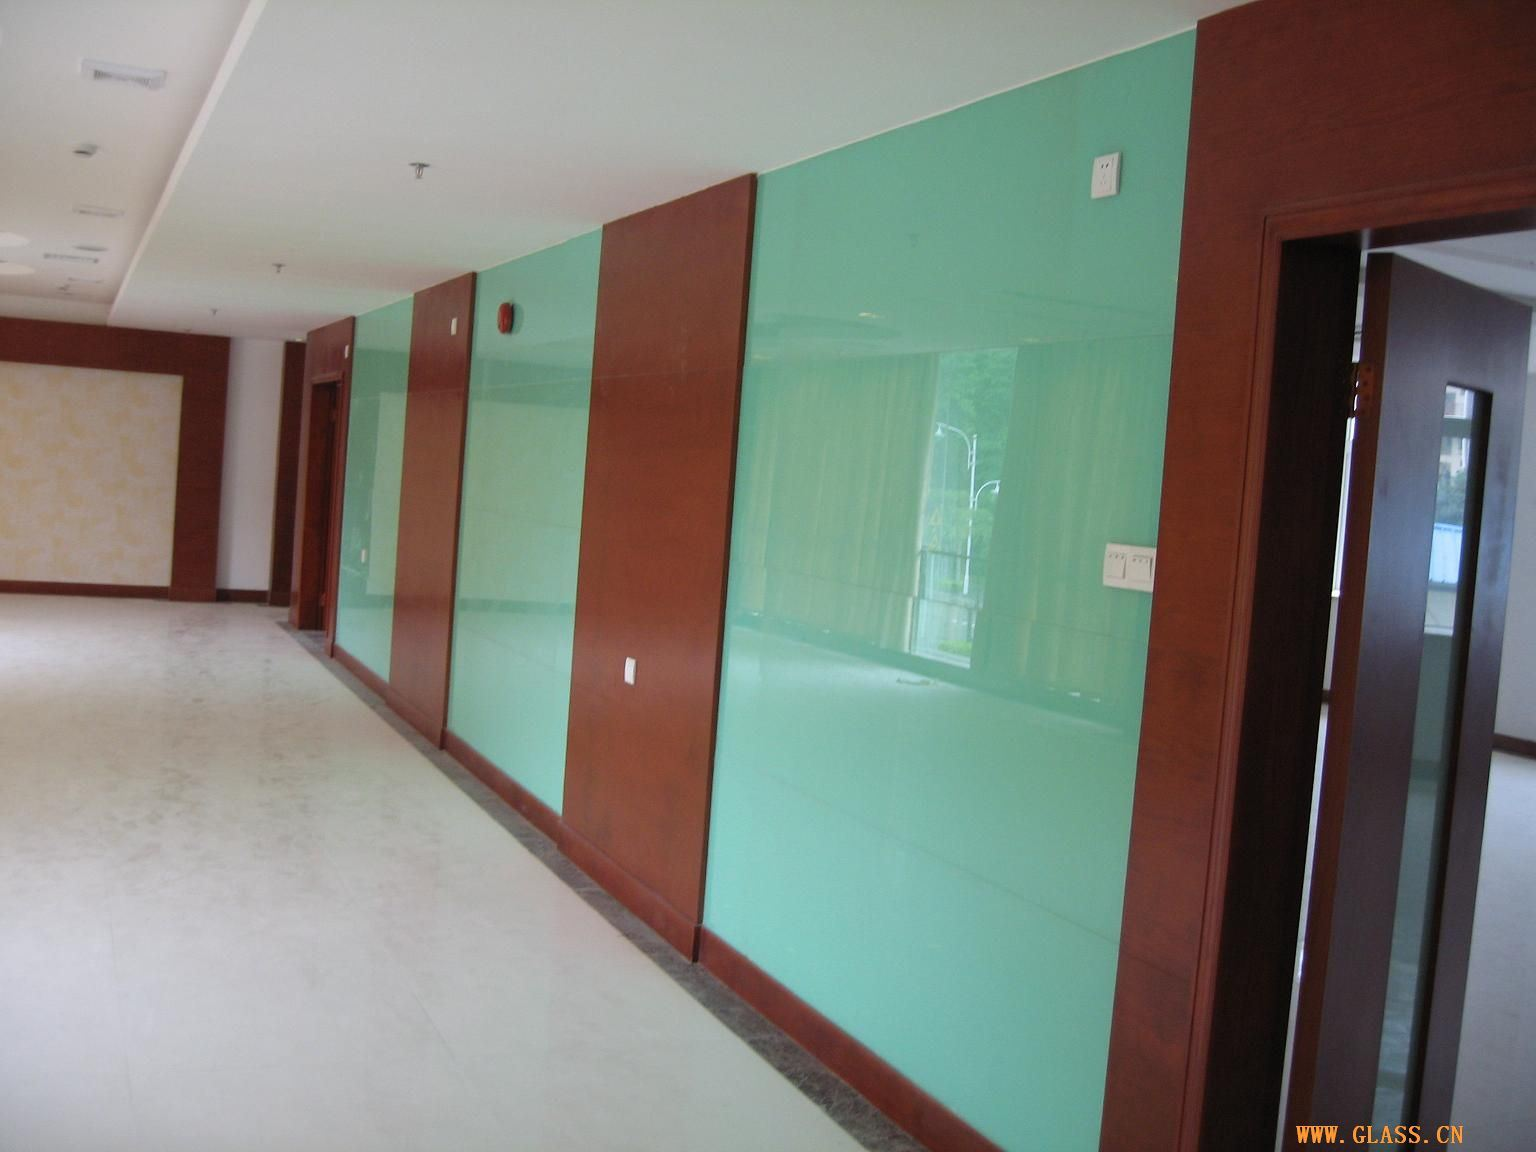 China laminated glass door china laminated glass for Back painted glass panels